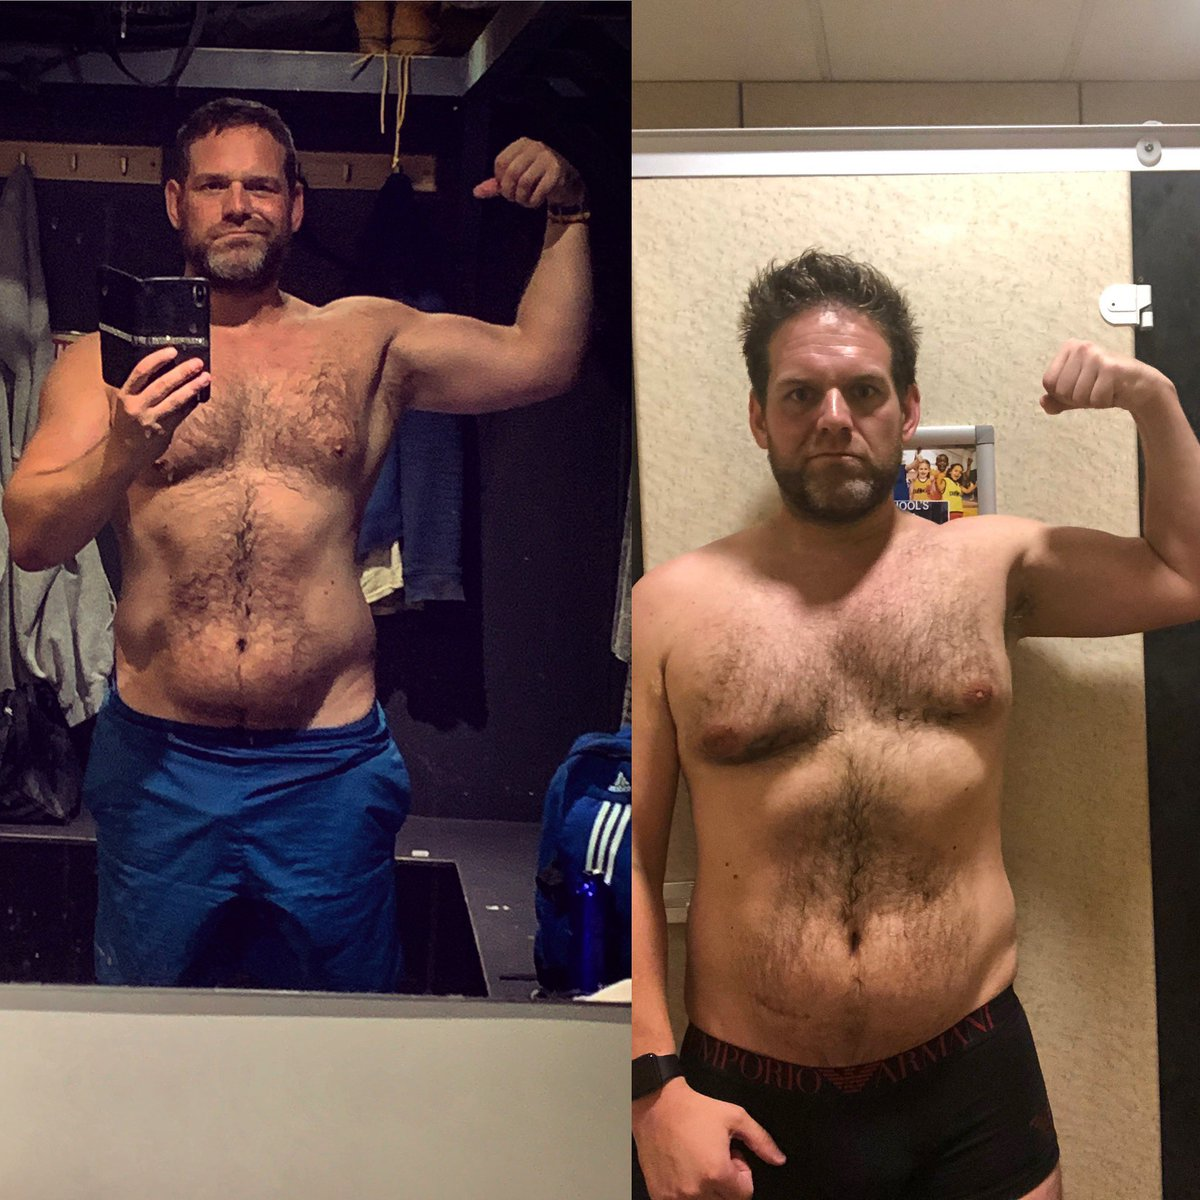 Progress after 5 months with @g18evans #progress #progresspic #rugby #muscle #fitness #bodybuilding #gym #training #fit #workout #strong #sport #instafit #rugbyunion #strength #goals #happy #rugbylove #rugbyplayer #rugbymen #hardwork<br>http://pic.twitter.com/axUJpeRvBG